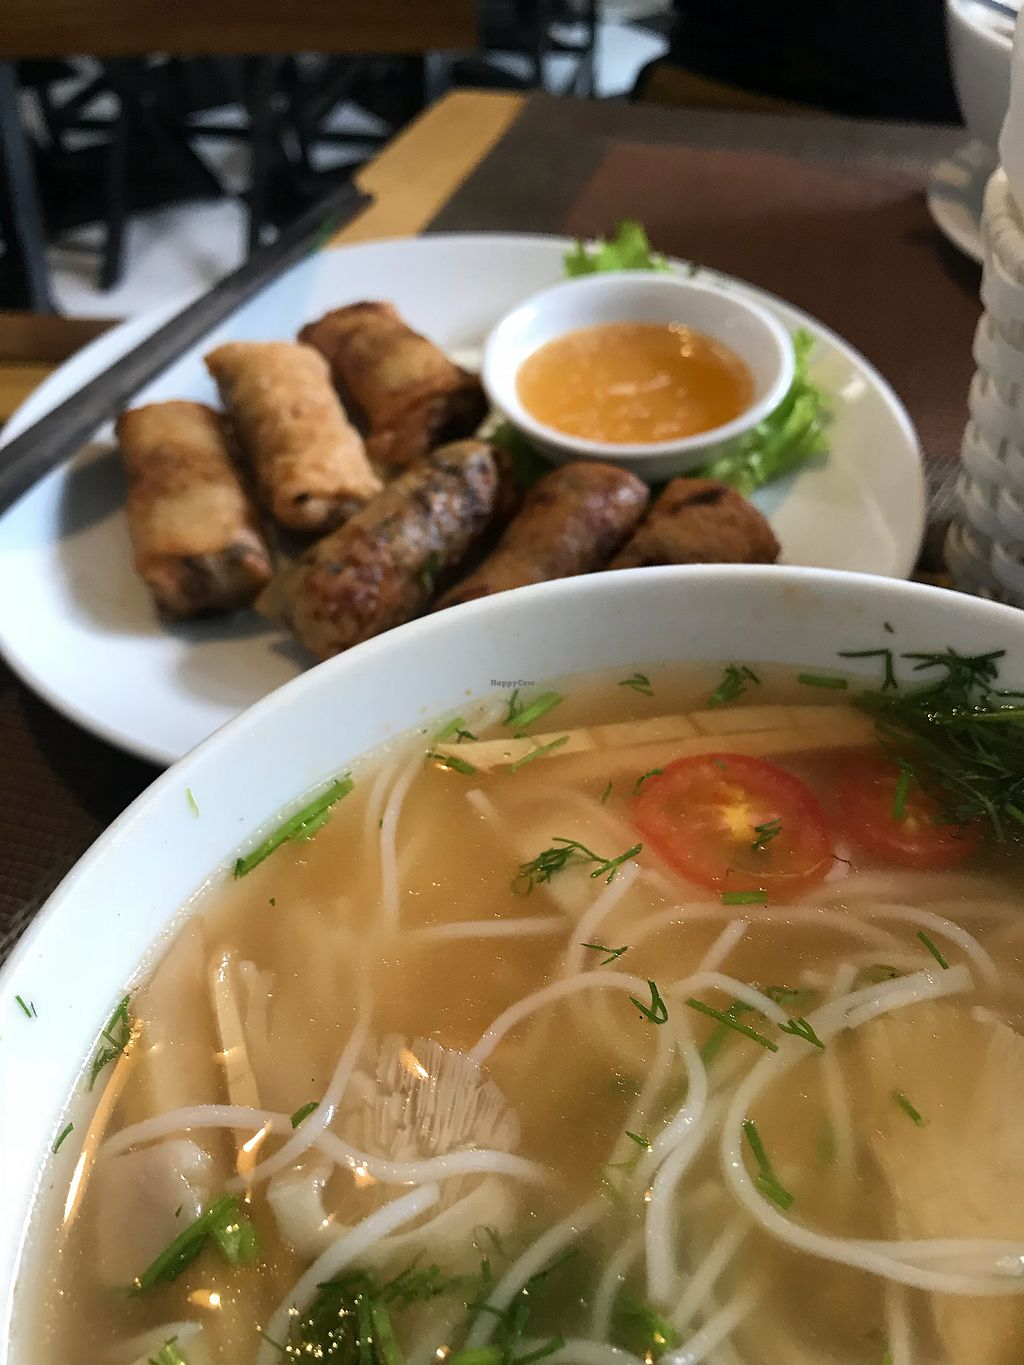 "Photo of CLOSED: Spring Lotus - Duong Sinh Chay  by <a href=""/members/profile/vegetariangirl"">vegetariangirl</a> <br/>Spring rolls and a breakfast soup <br/> January 14, 2018  - <a href='/contact/abuse/image/90983/346441'>Report</a>"